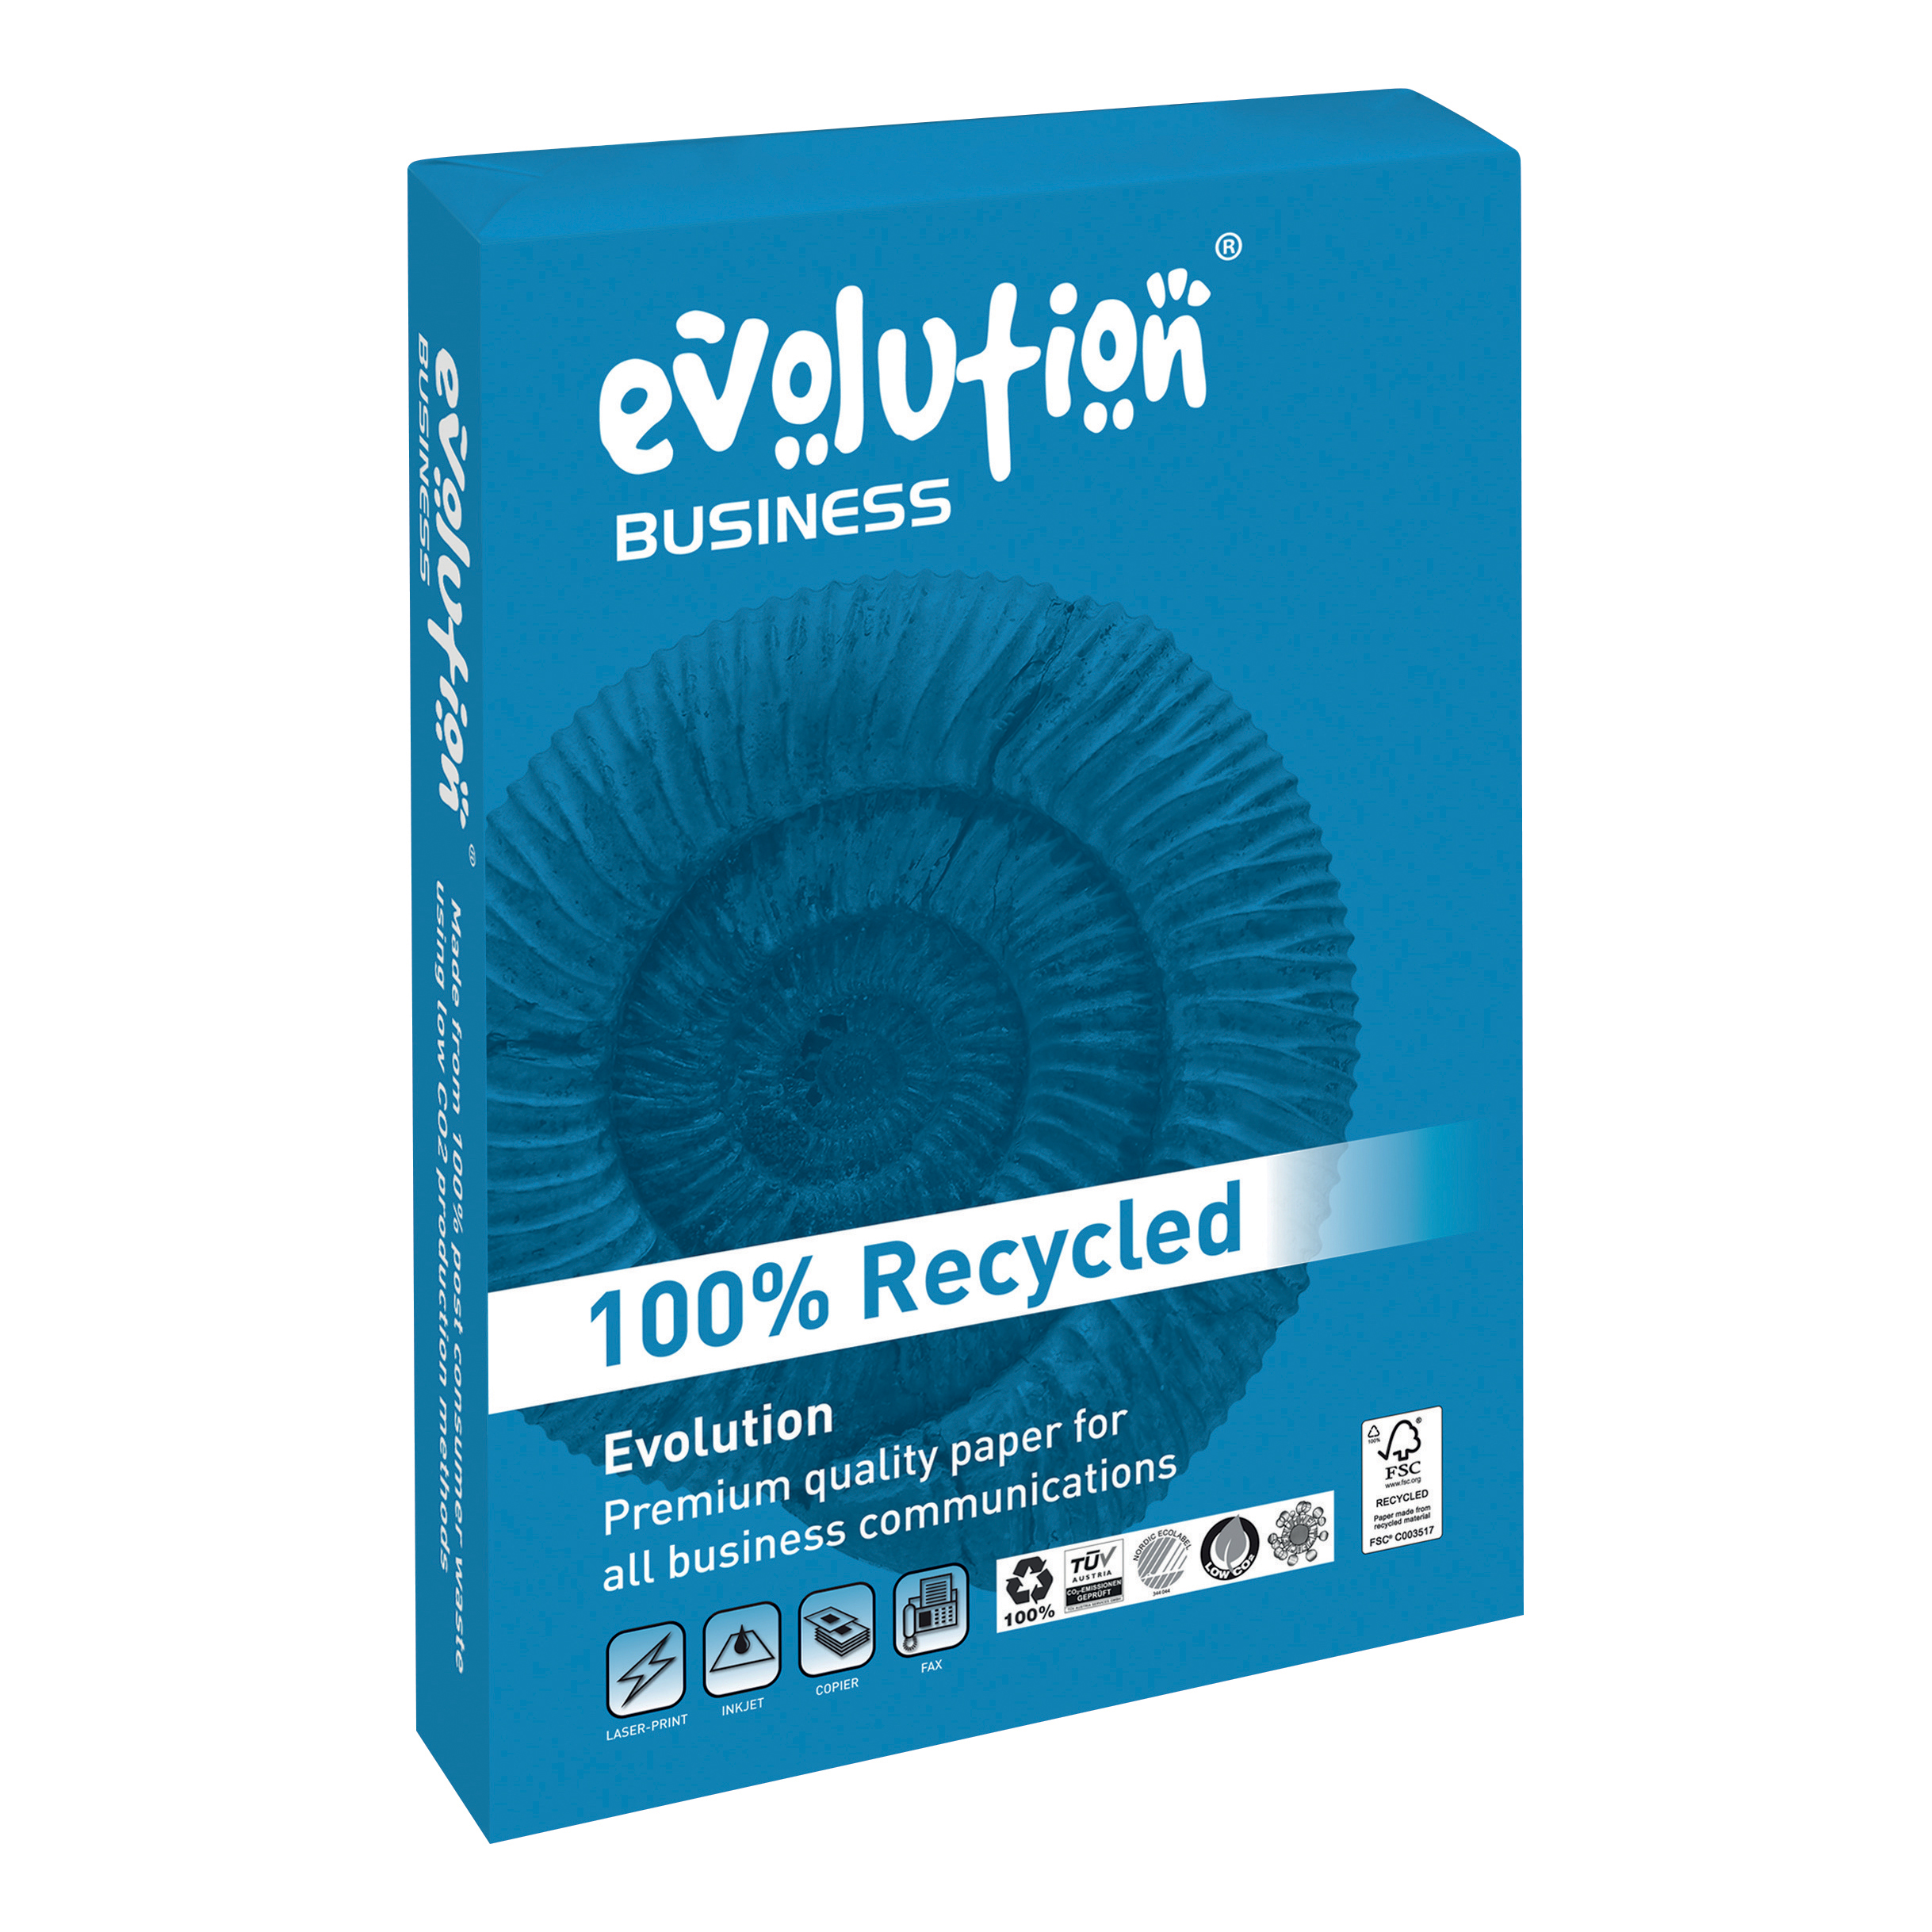 Evolution Business Recycled Paper 80gsm FSC A3 White Ref EVBU4280 500 Sheets